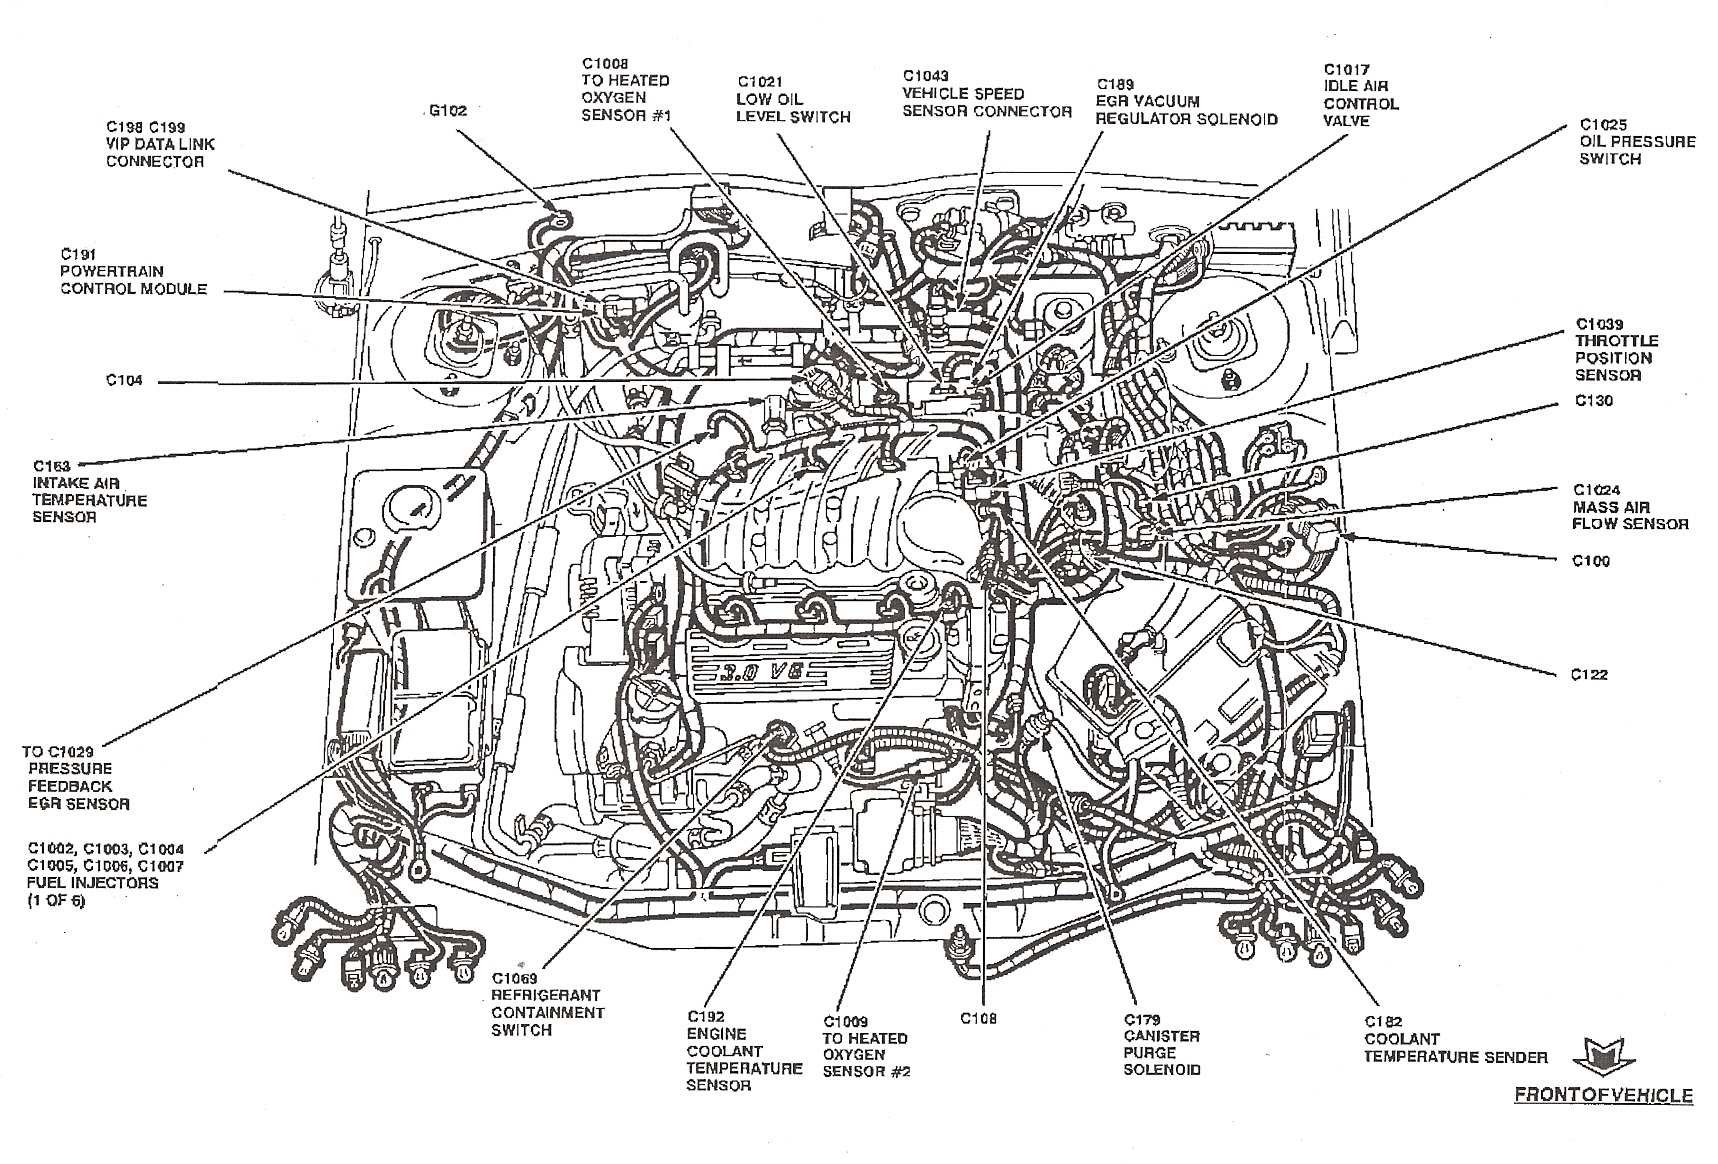 05 Ford Escape 3 0 Engine Wire Harness Diagram - Wiring Diagram Replace  loan-process - loan-process.miramontiseo.it | 05 Ford Escape 3 0 Engine Wire Harness Diagram |  | loan-process.miramontiseo.it